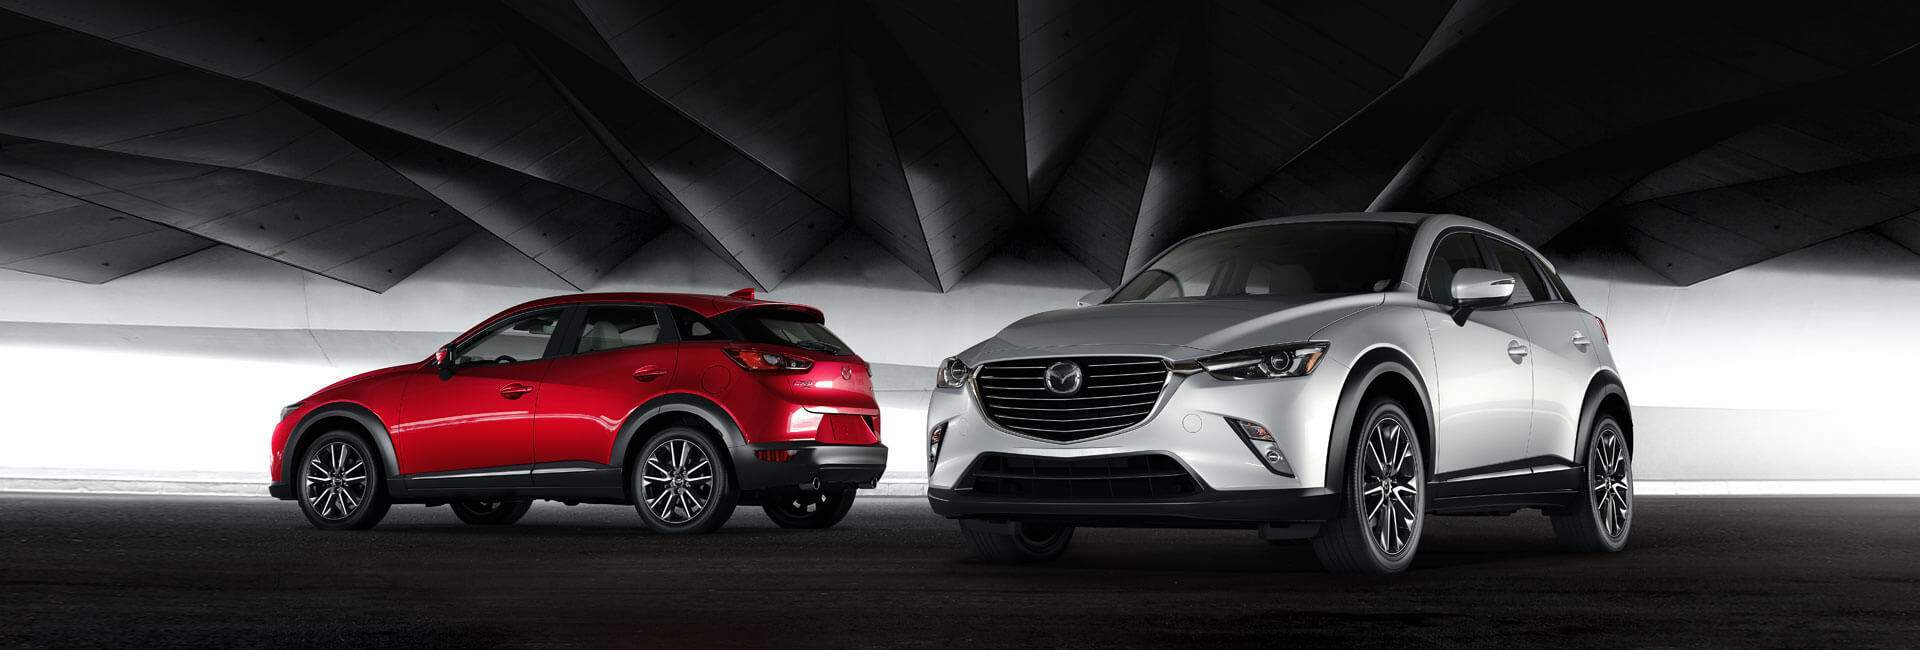 2017 Mazda CX-3 in City of Industry